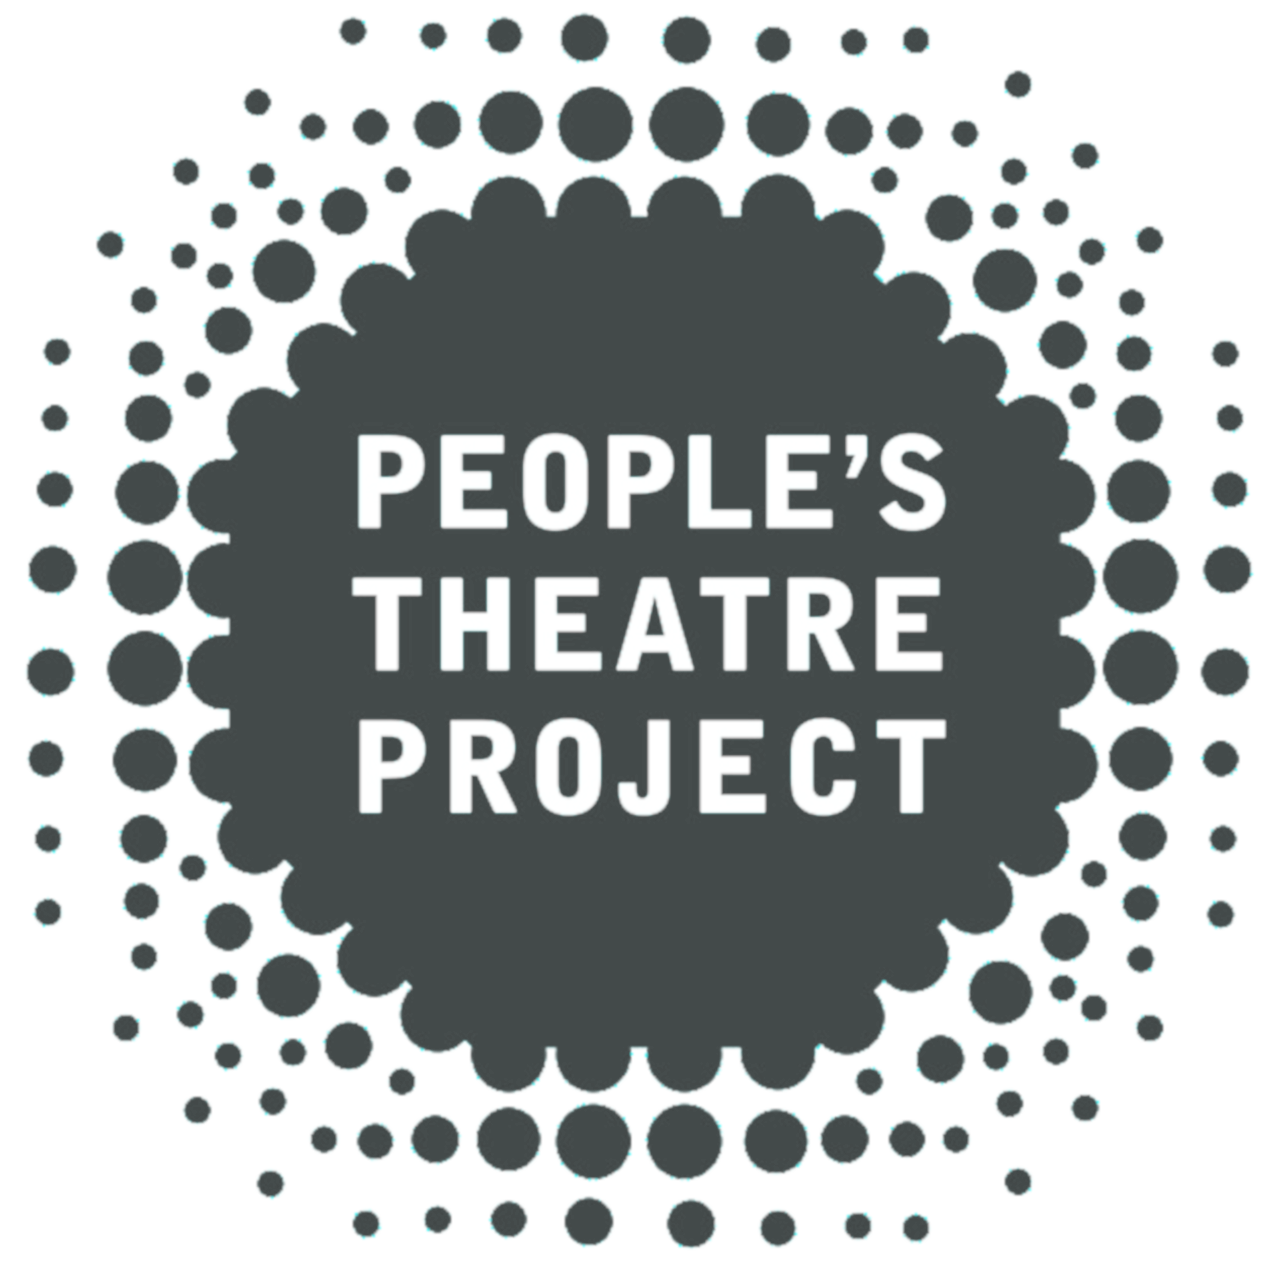 logo of Peoples Theatre Project